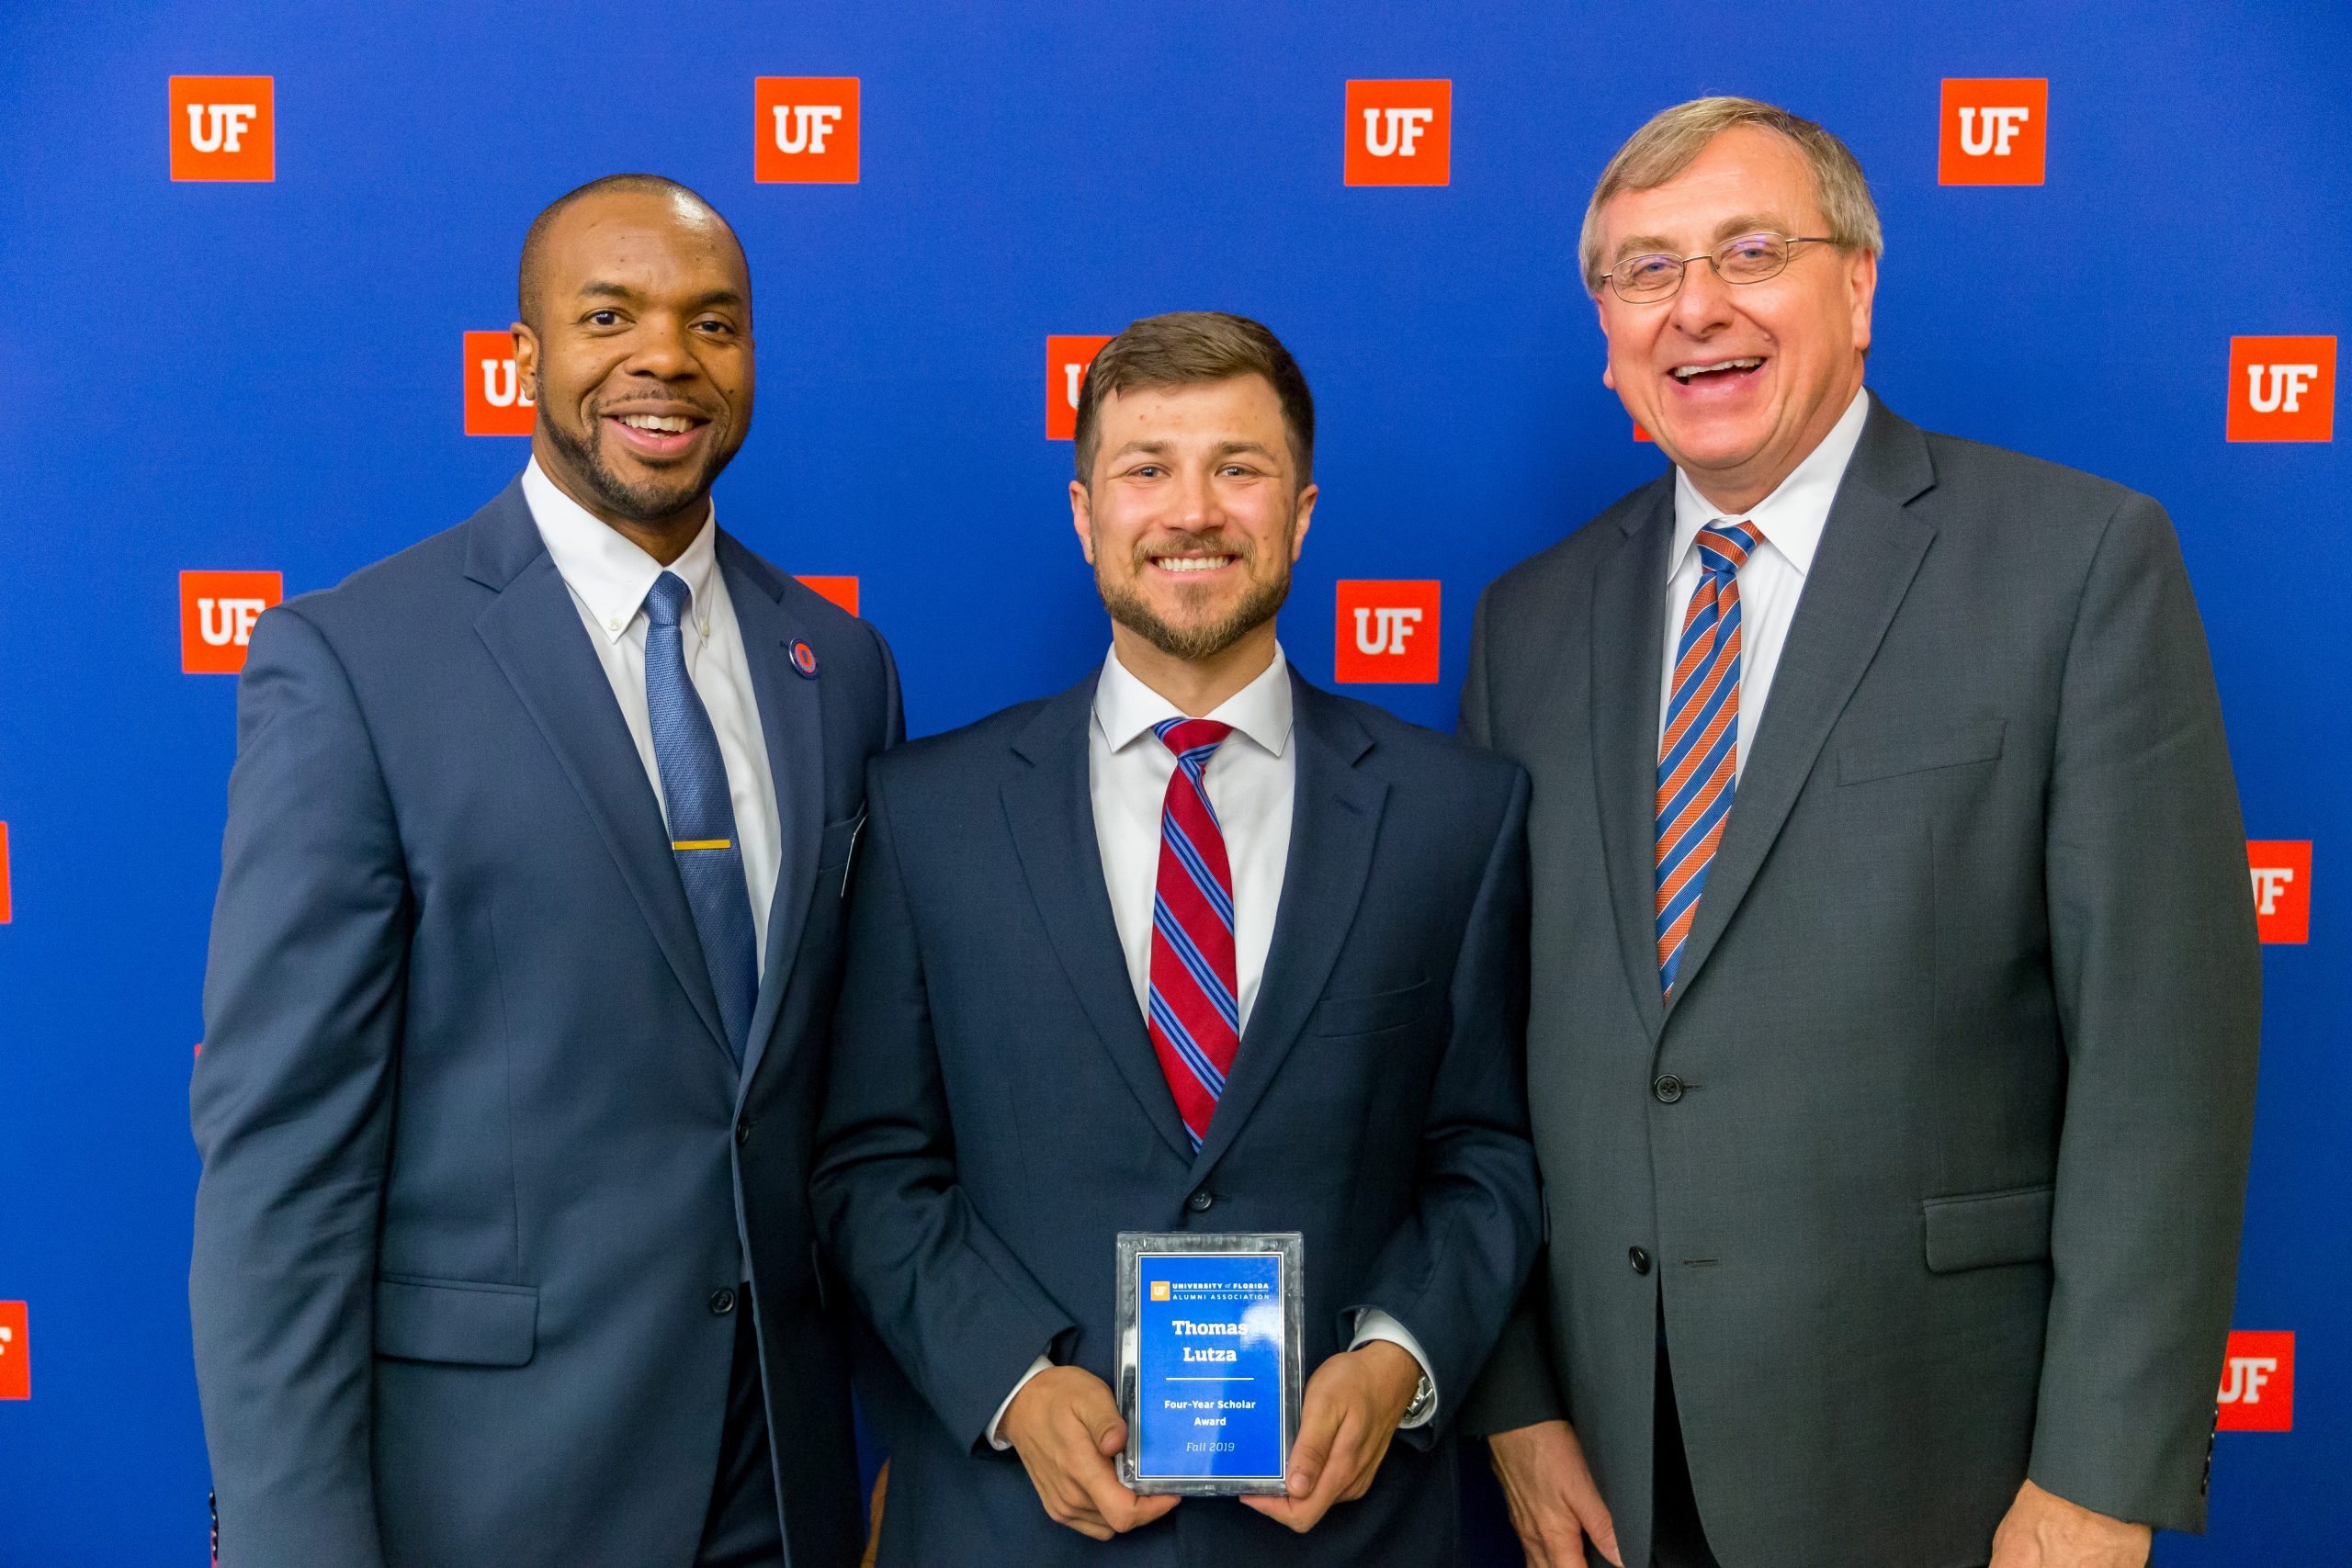 Curtis Taylor, Ph.D and President Fuchs with Thomas Lutza holding award